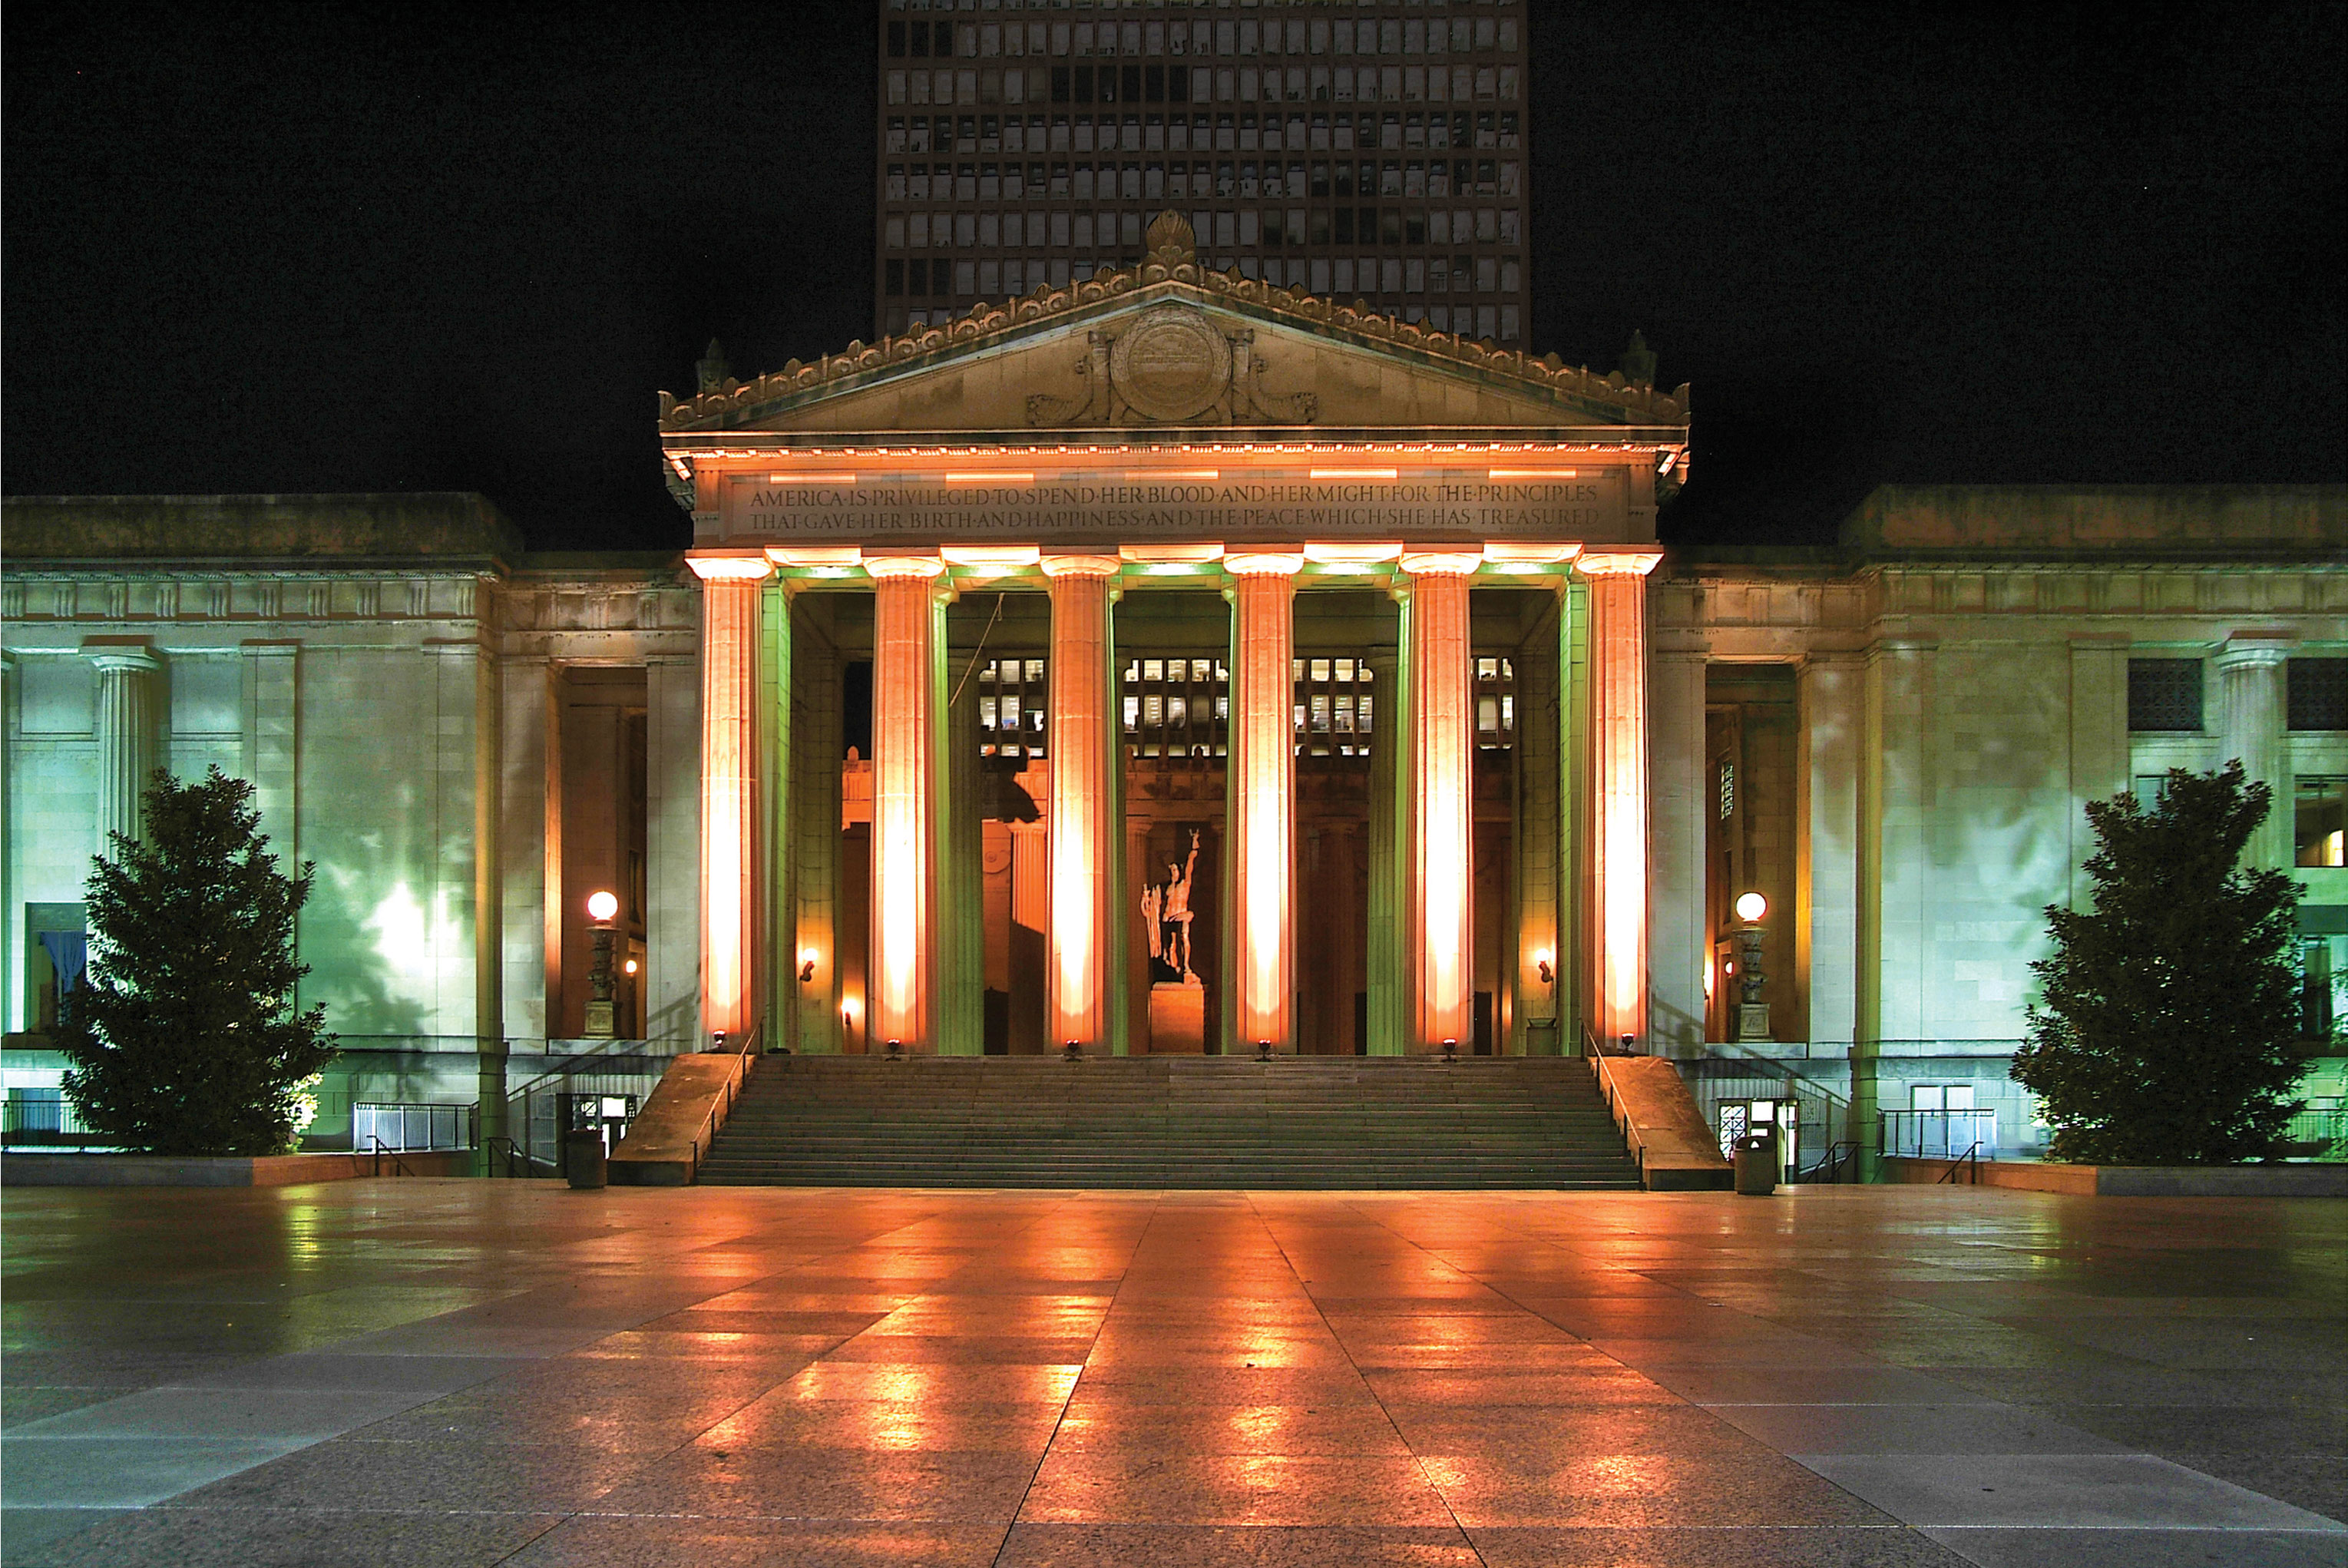 Front view of War Memorial Auditorium at night